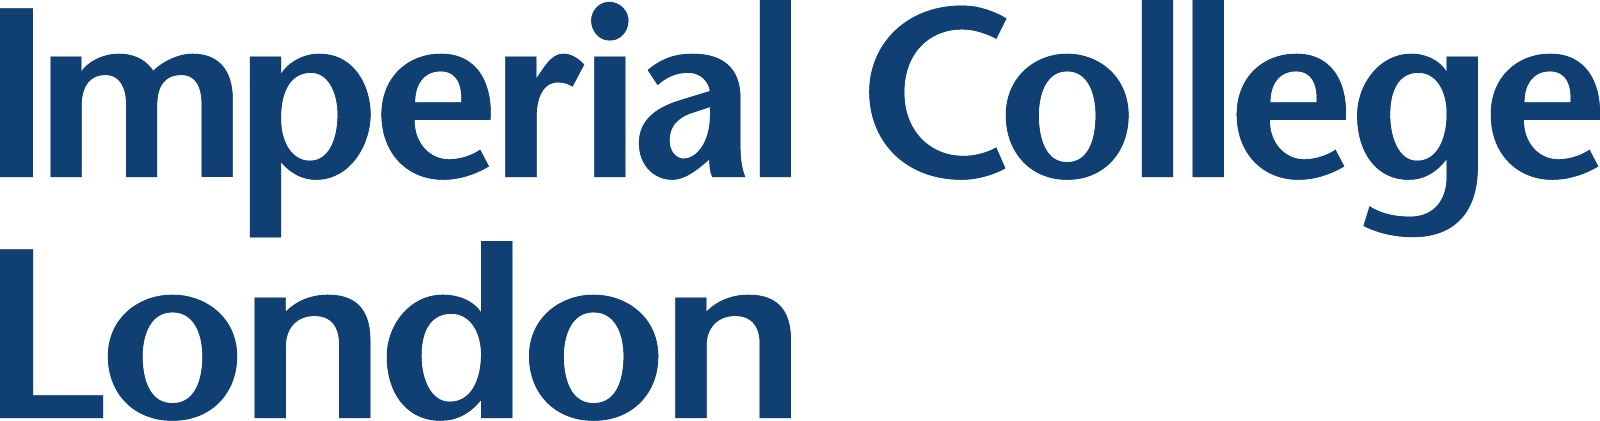 Imperial College London monotone logo